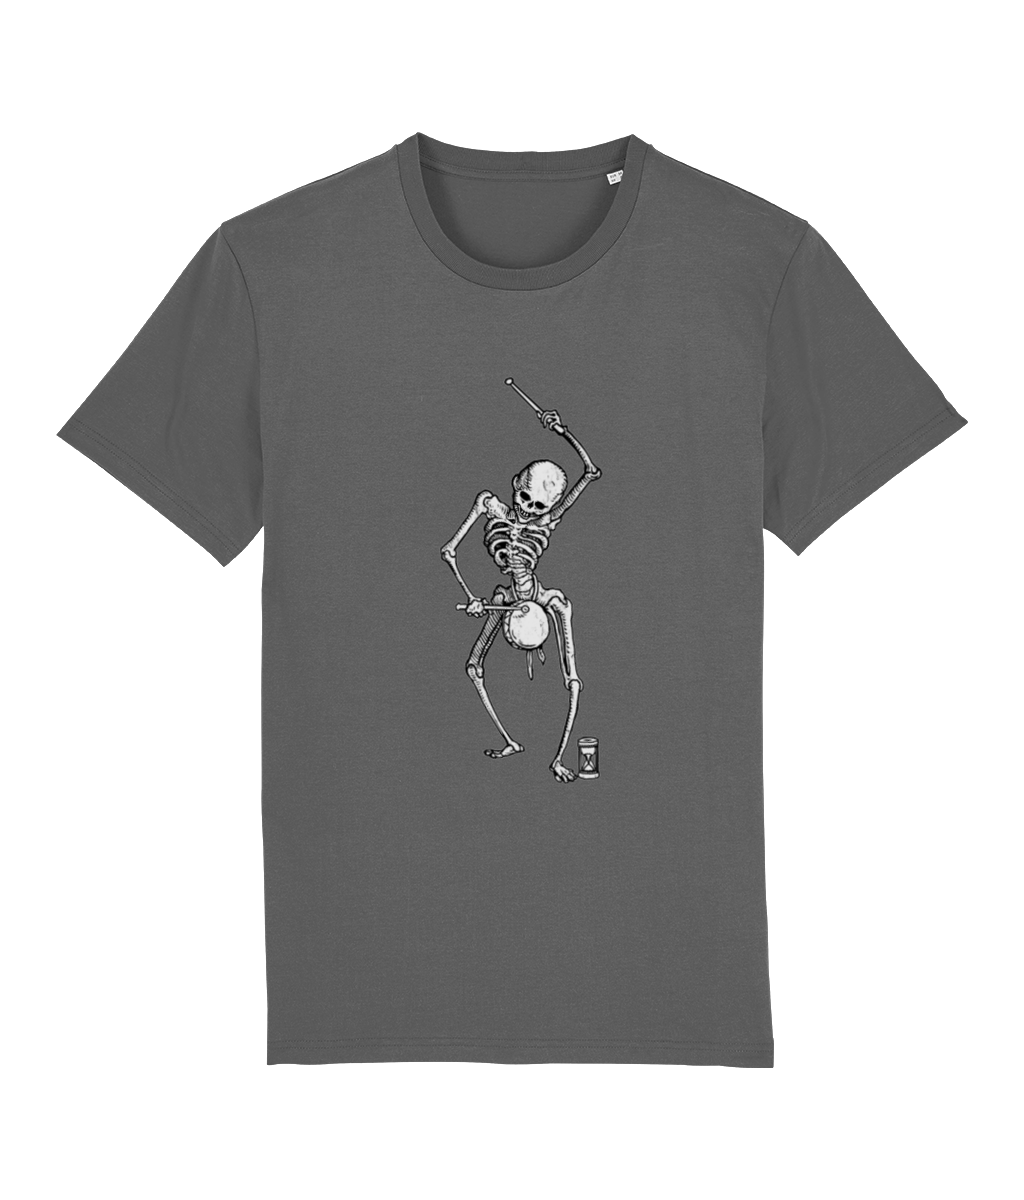 Dance with Death (Grey Skeleton) Unisex T-Shirt